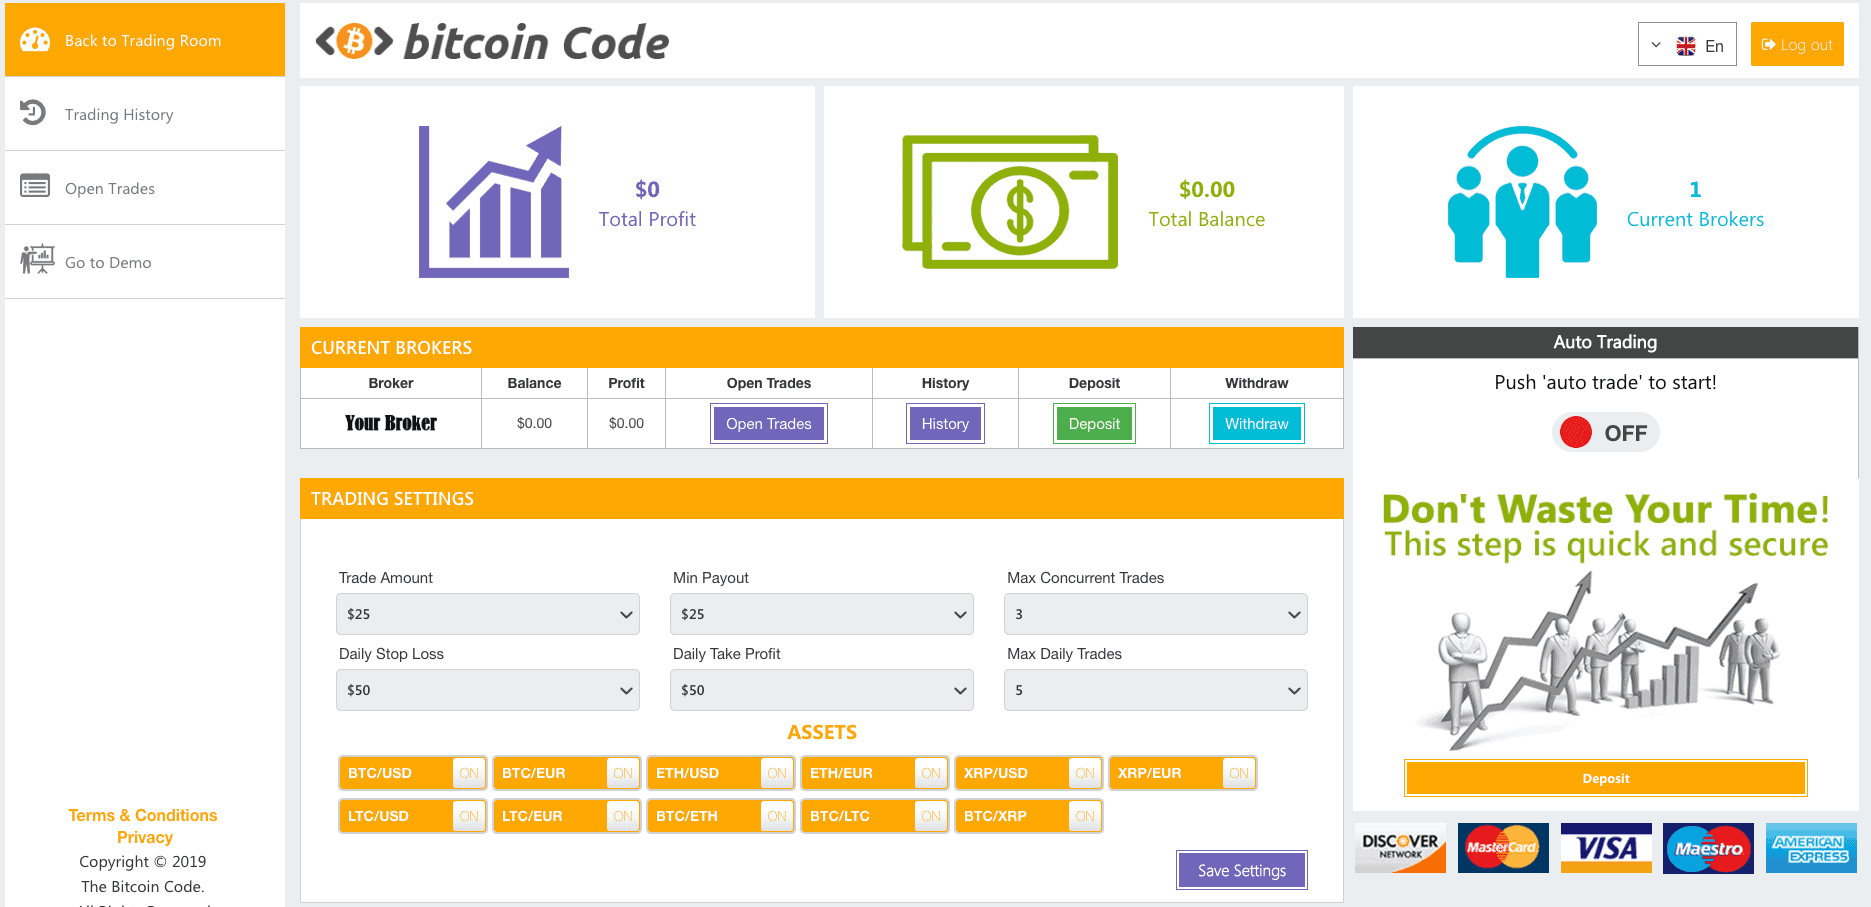 Bitcoin Code Review   Scam or Legit? 🥇 The Ultimate Test Review